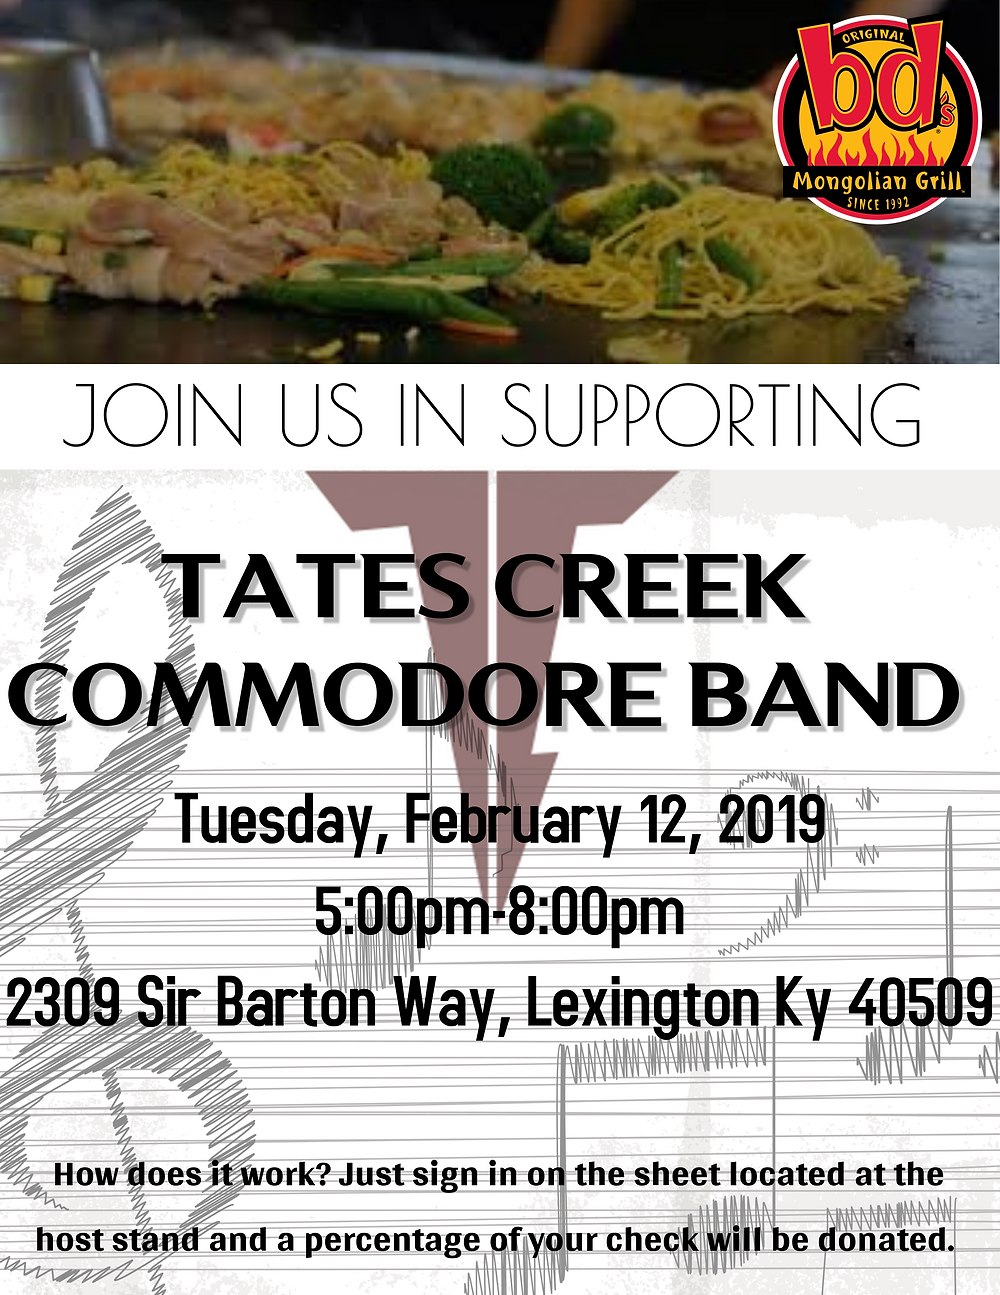 Dine Out - Earn Money!  Join us at BD's Mongolian Grill on Tuesday, February 12 from 5-8pm.  Sign in on the TC Band list when you arrive and the Tates Creek Band will receive a portion of the proceeds from your meal!